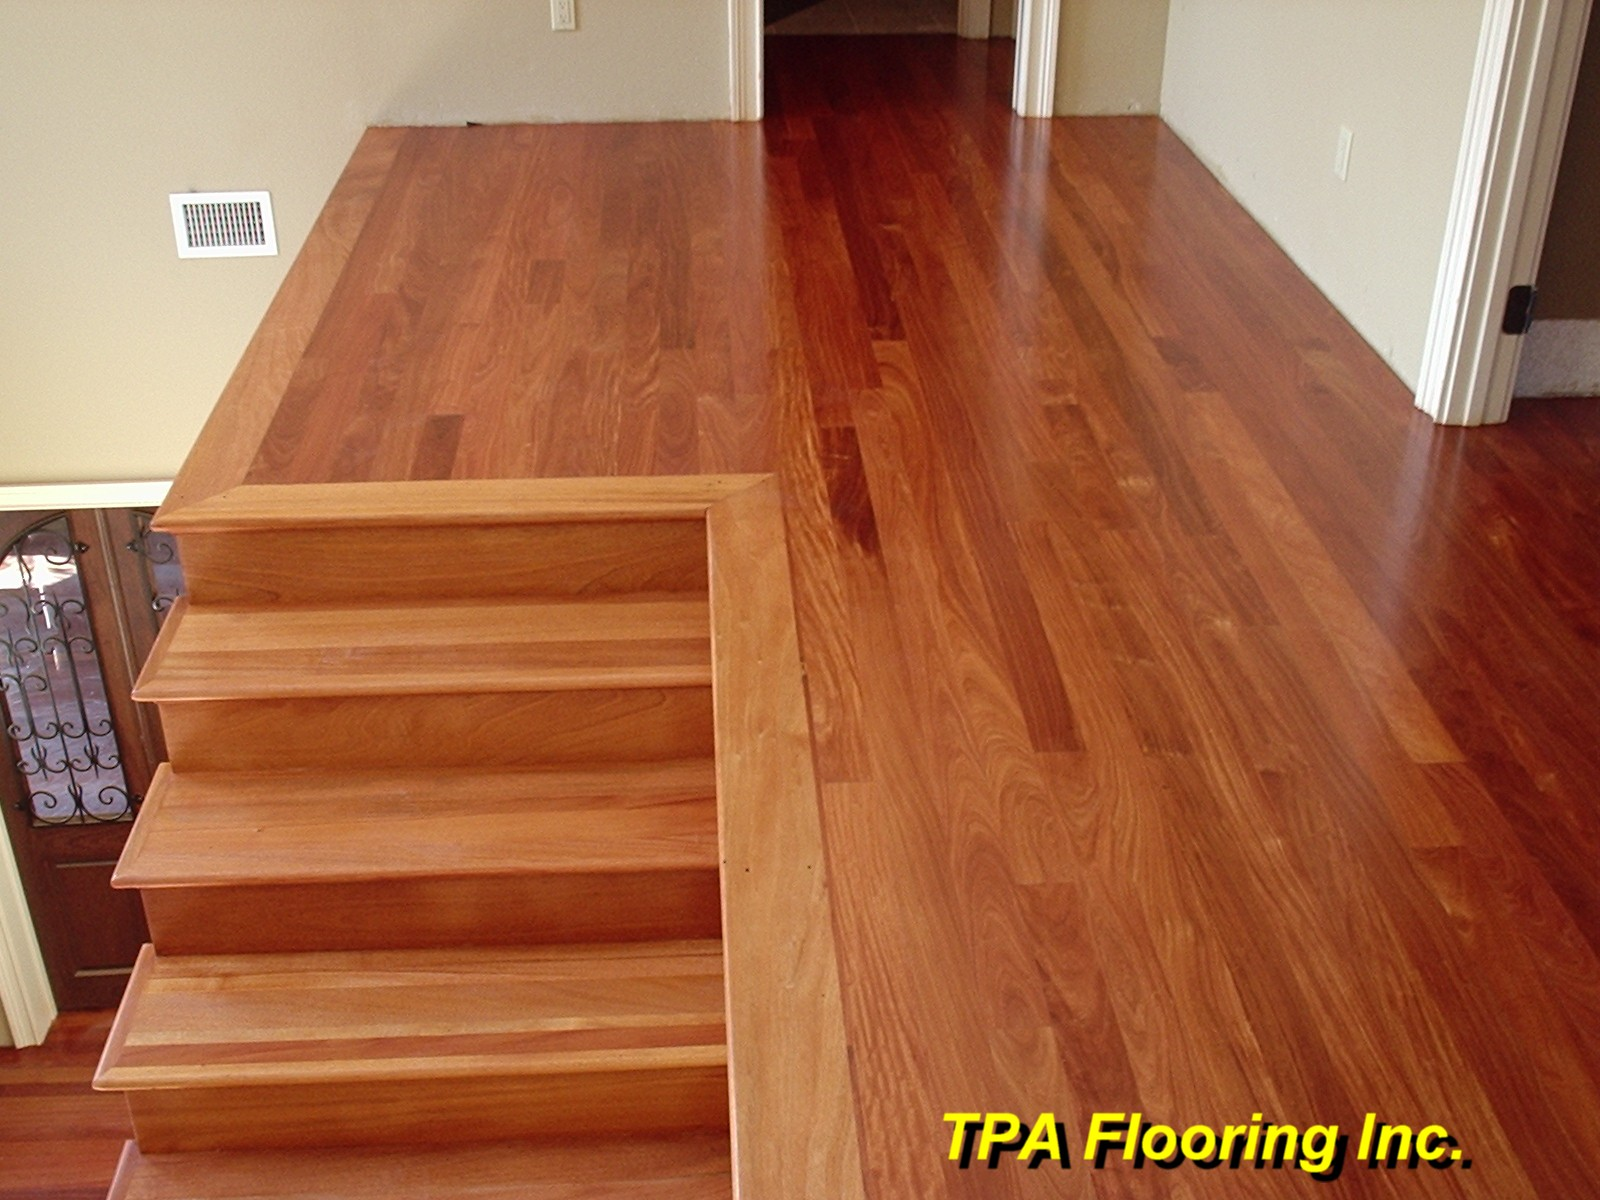 Gallery 2 for Brazilian cherry flooring